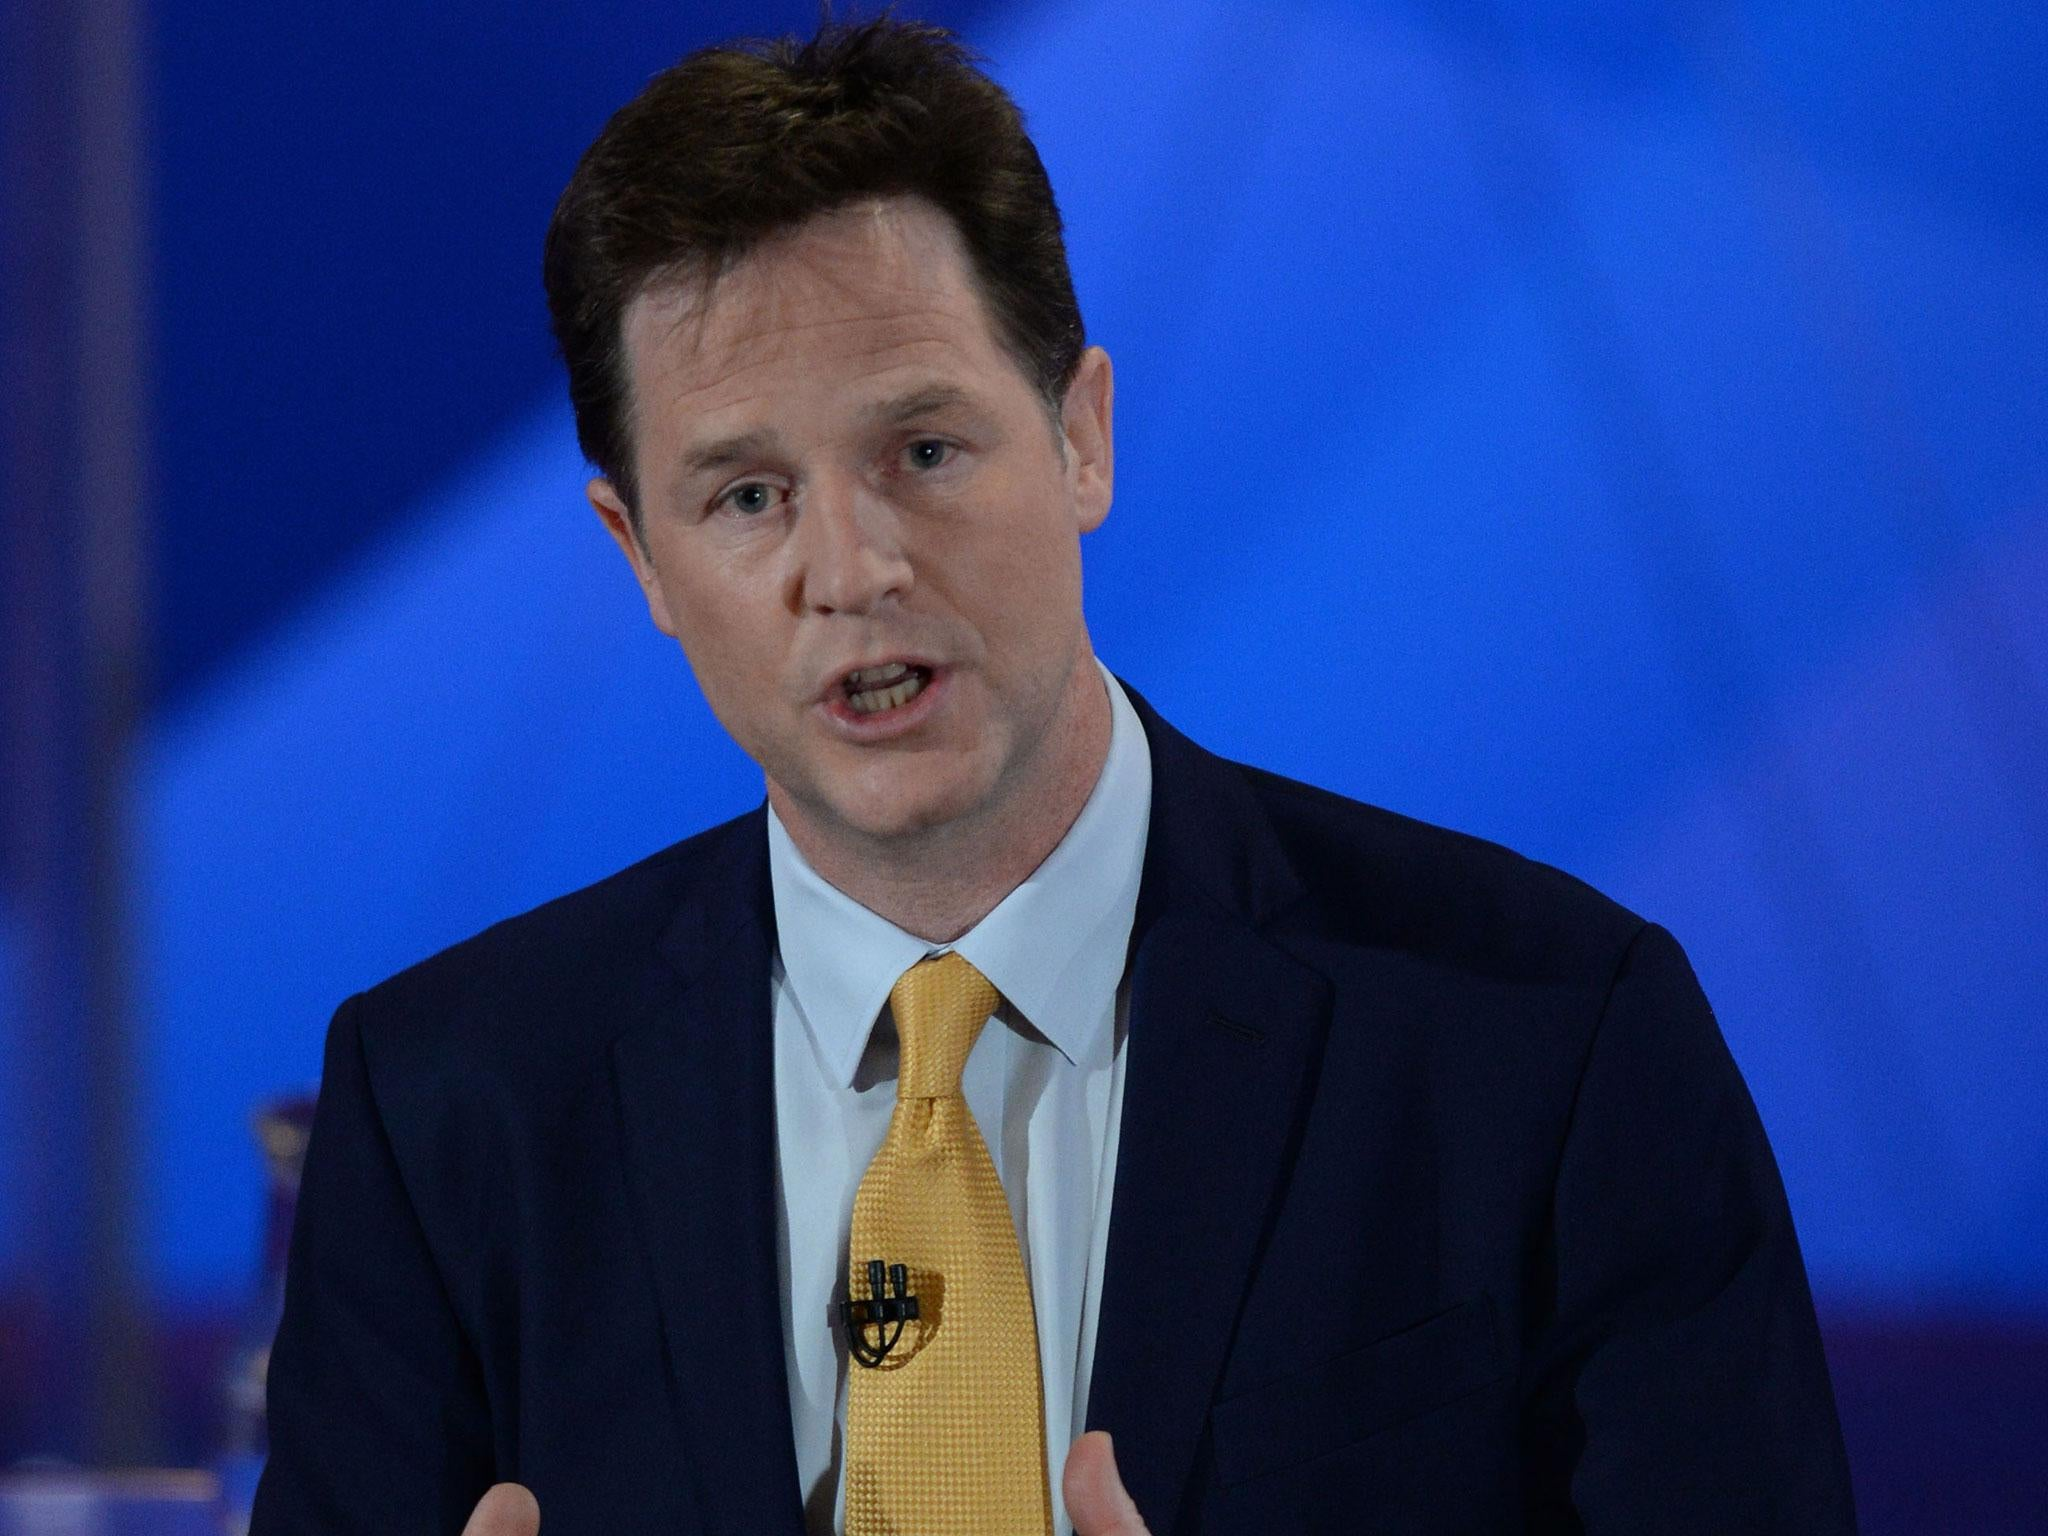 Nick Clegg to accuse Theresa May of putting lives at risk with plans to weaken terror fight after Brexit